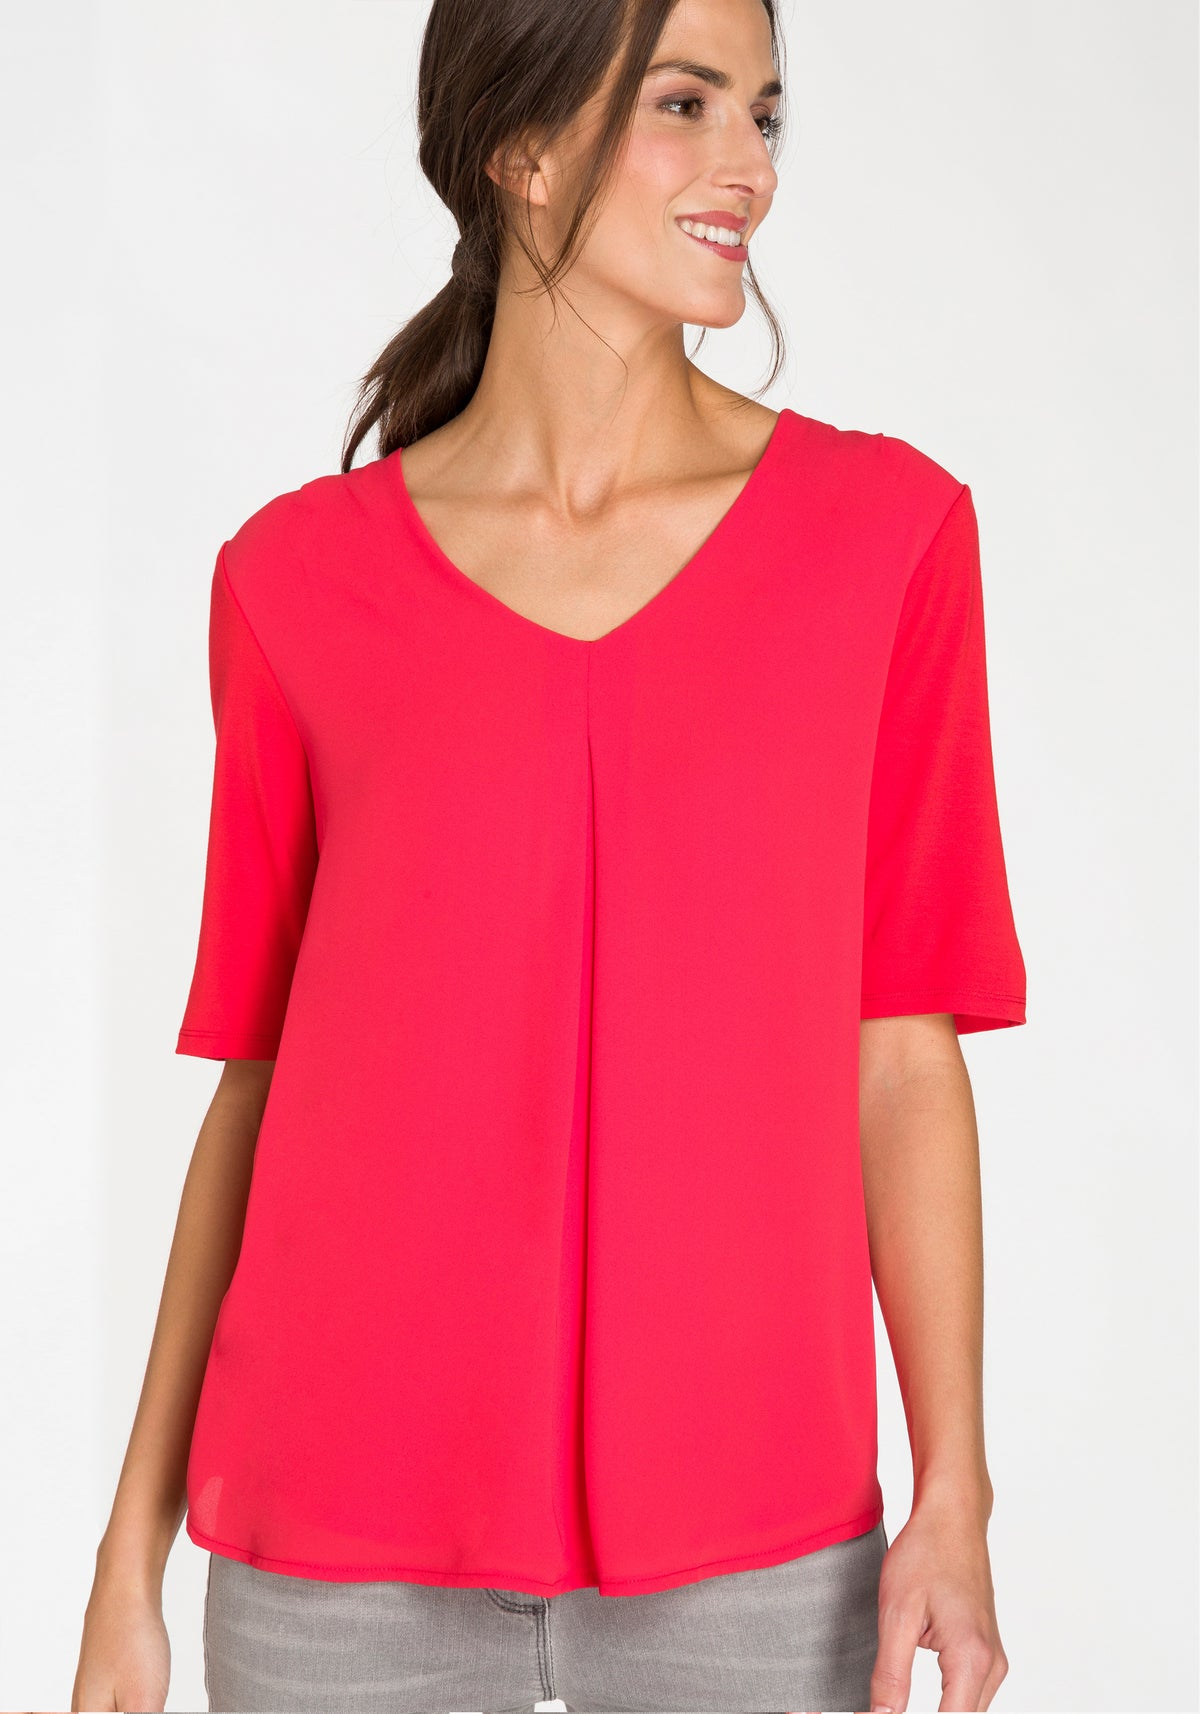 Mid Sleeve V-Neck Solid T-Shirt with Single Front Pleat